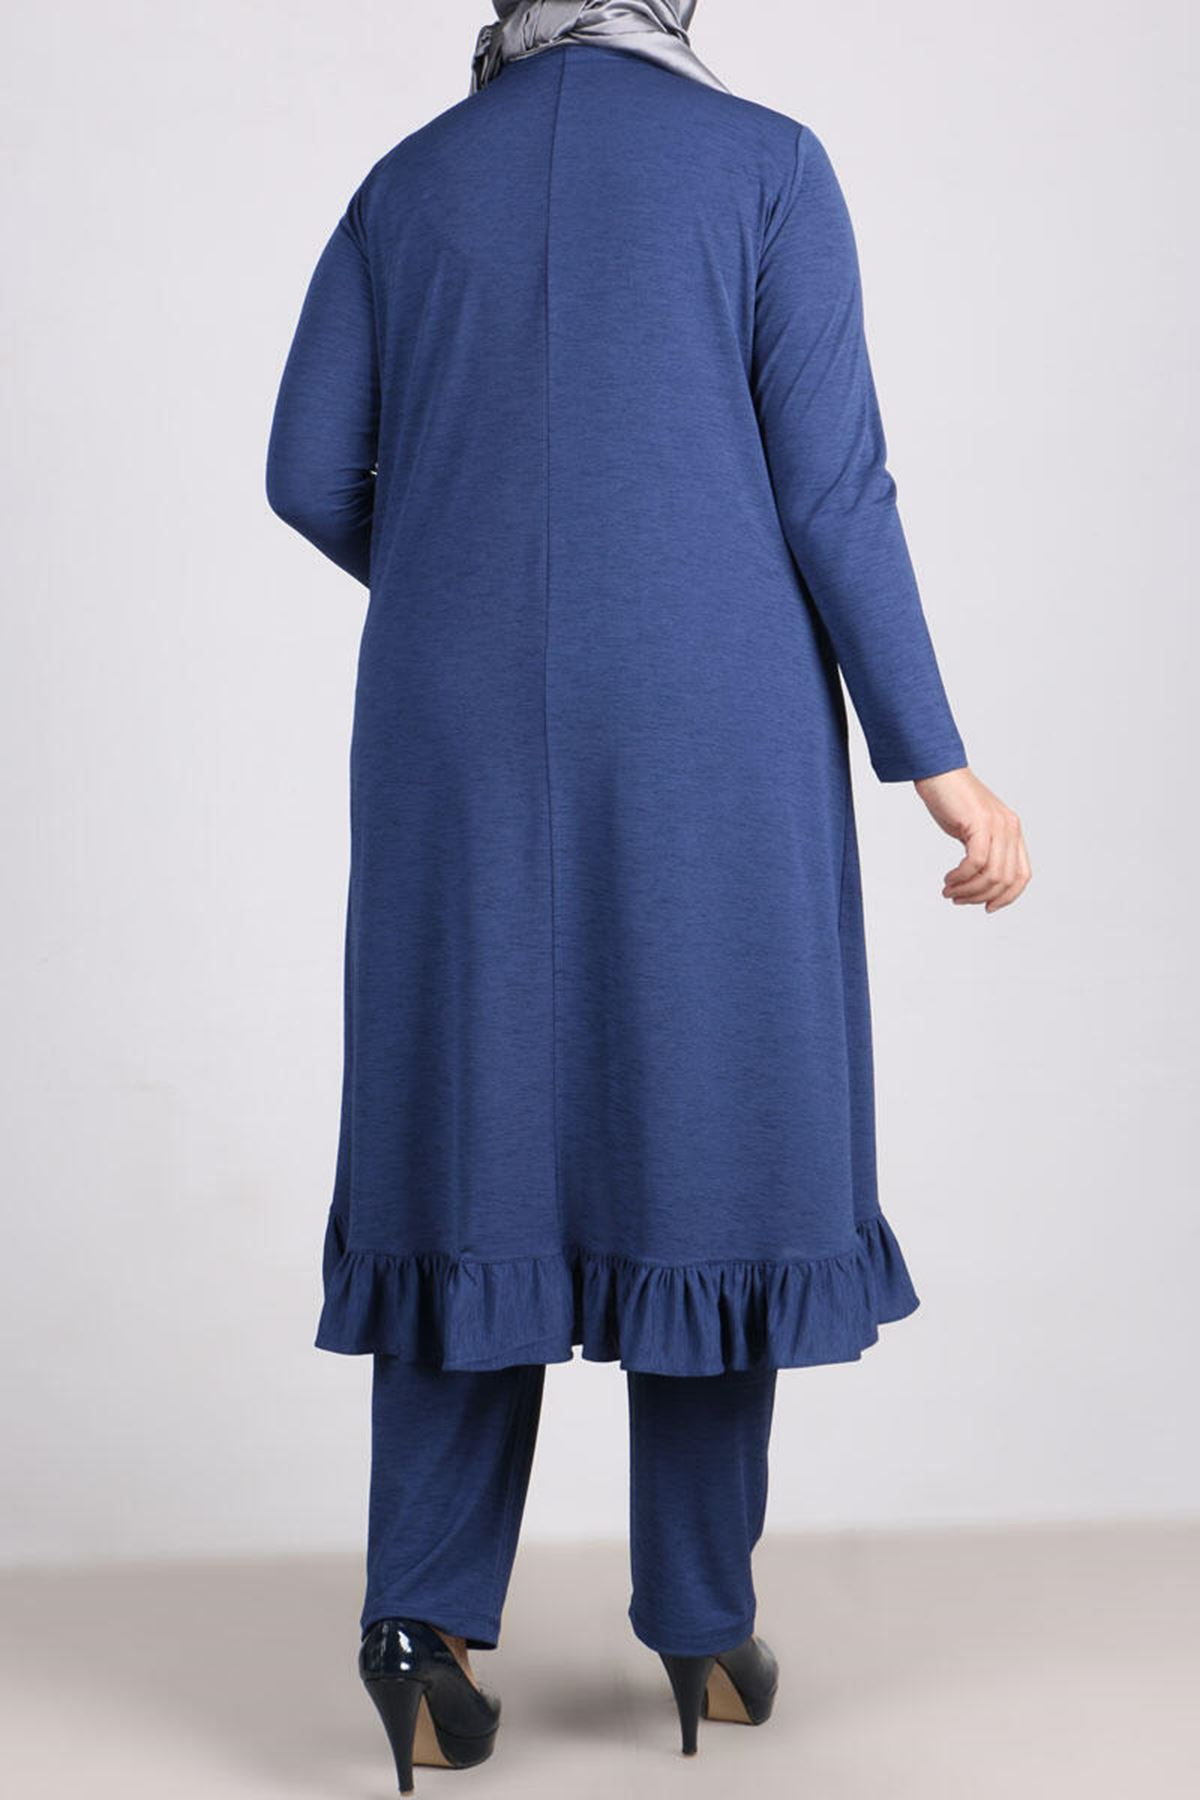 7686 Plus Size Two Piece Set with Tunic and Pants- Indigo